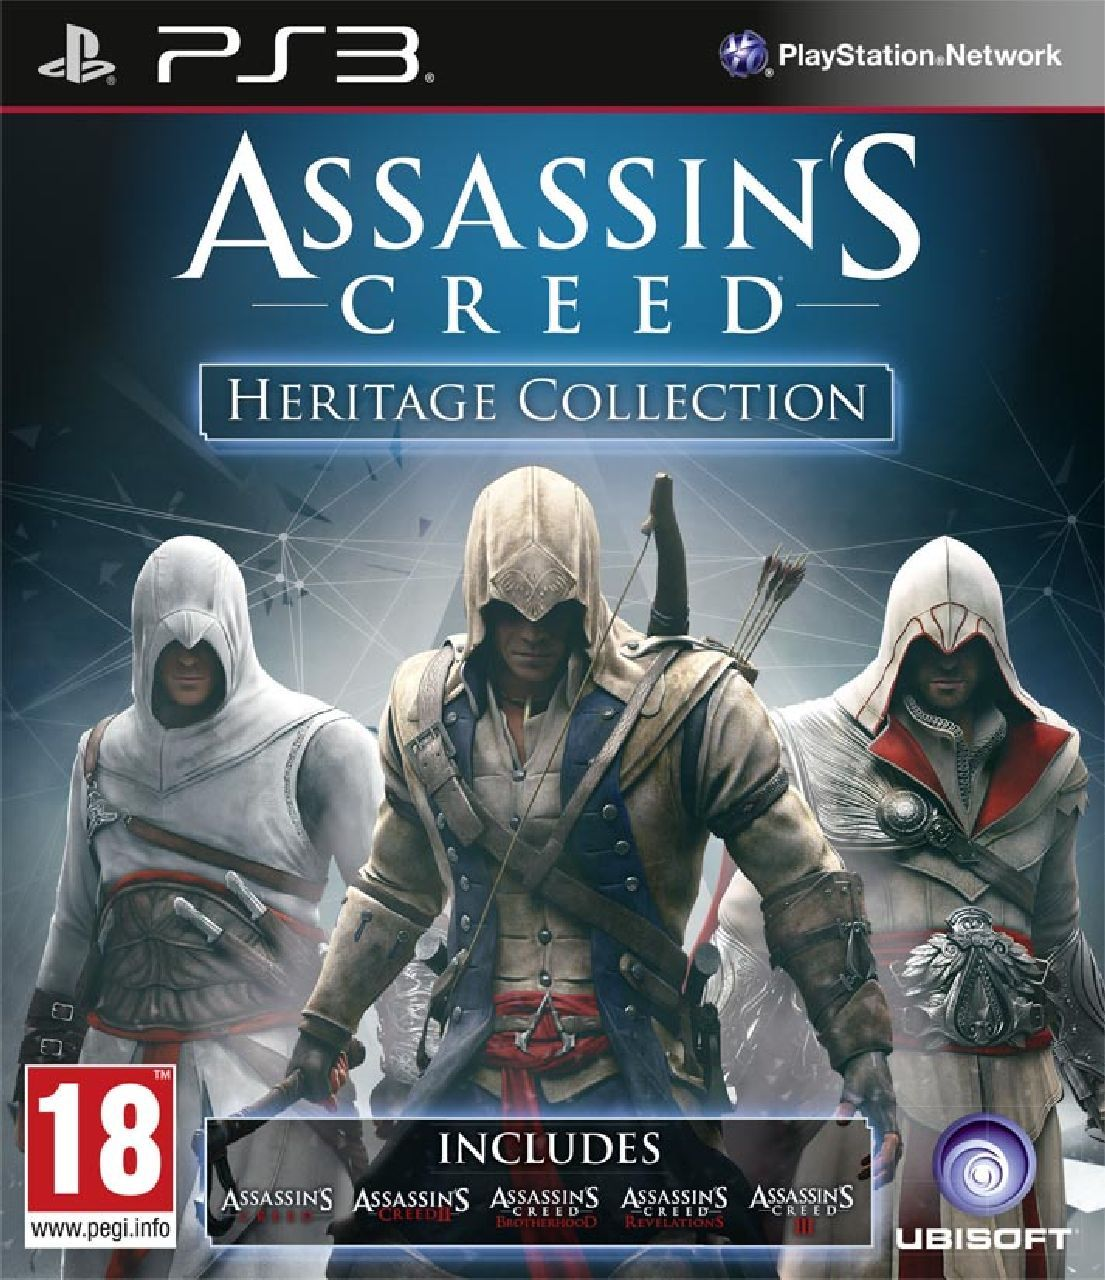 [PS3] Assassin's Creed Heritage Collection - FULL ITA